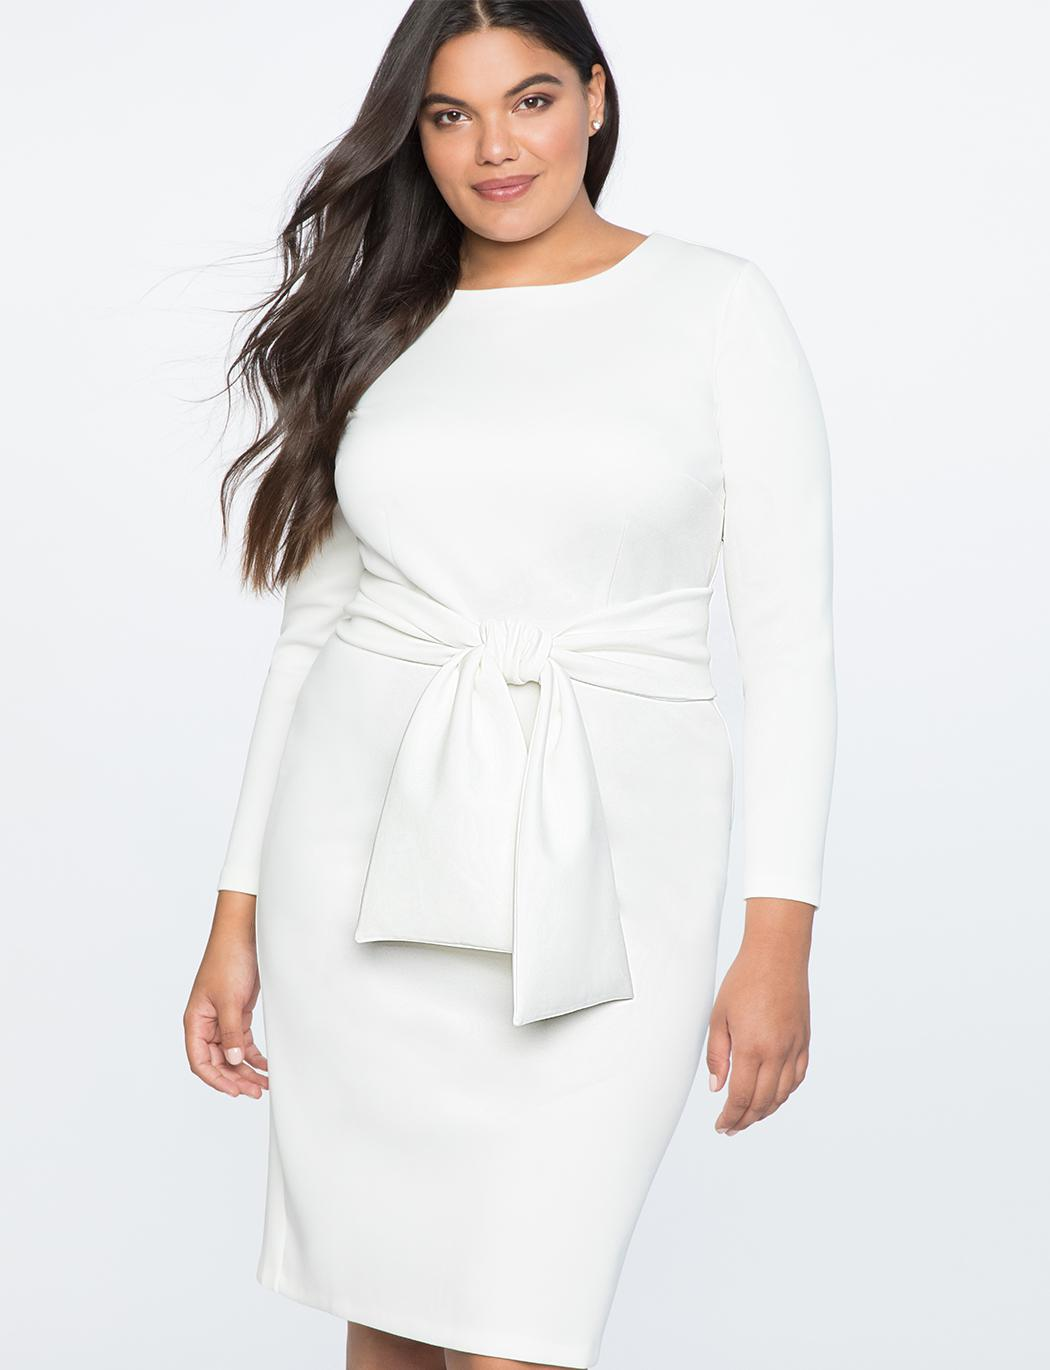 5b8413c632fd6d Lyst - Eloquii Long Sleeve Scuba Dress With Tie in White